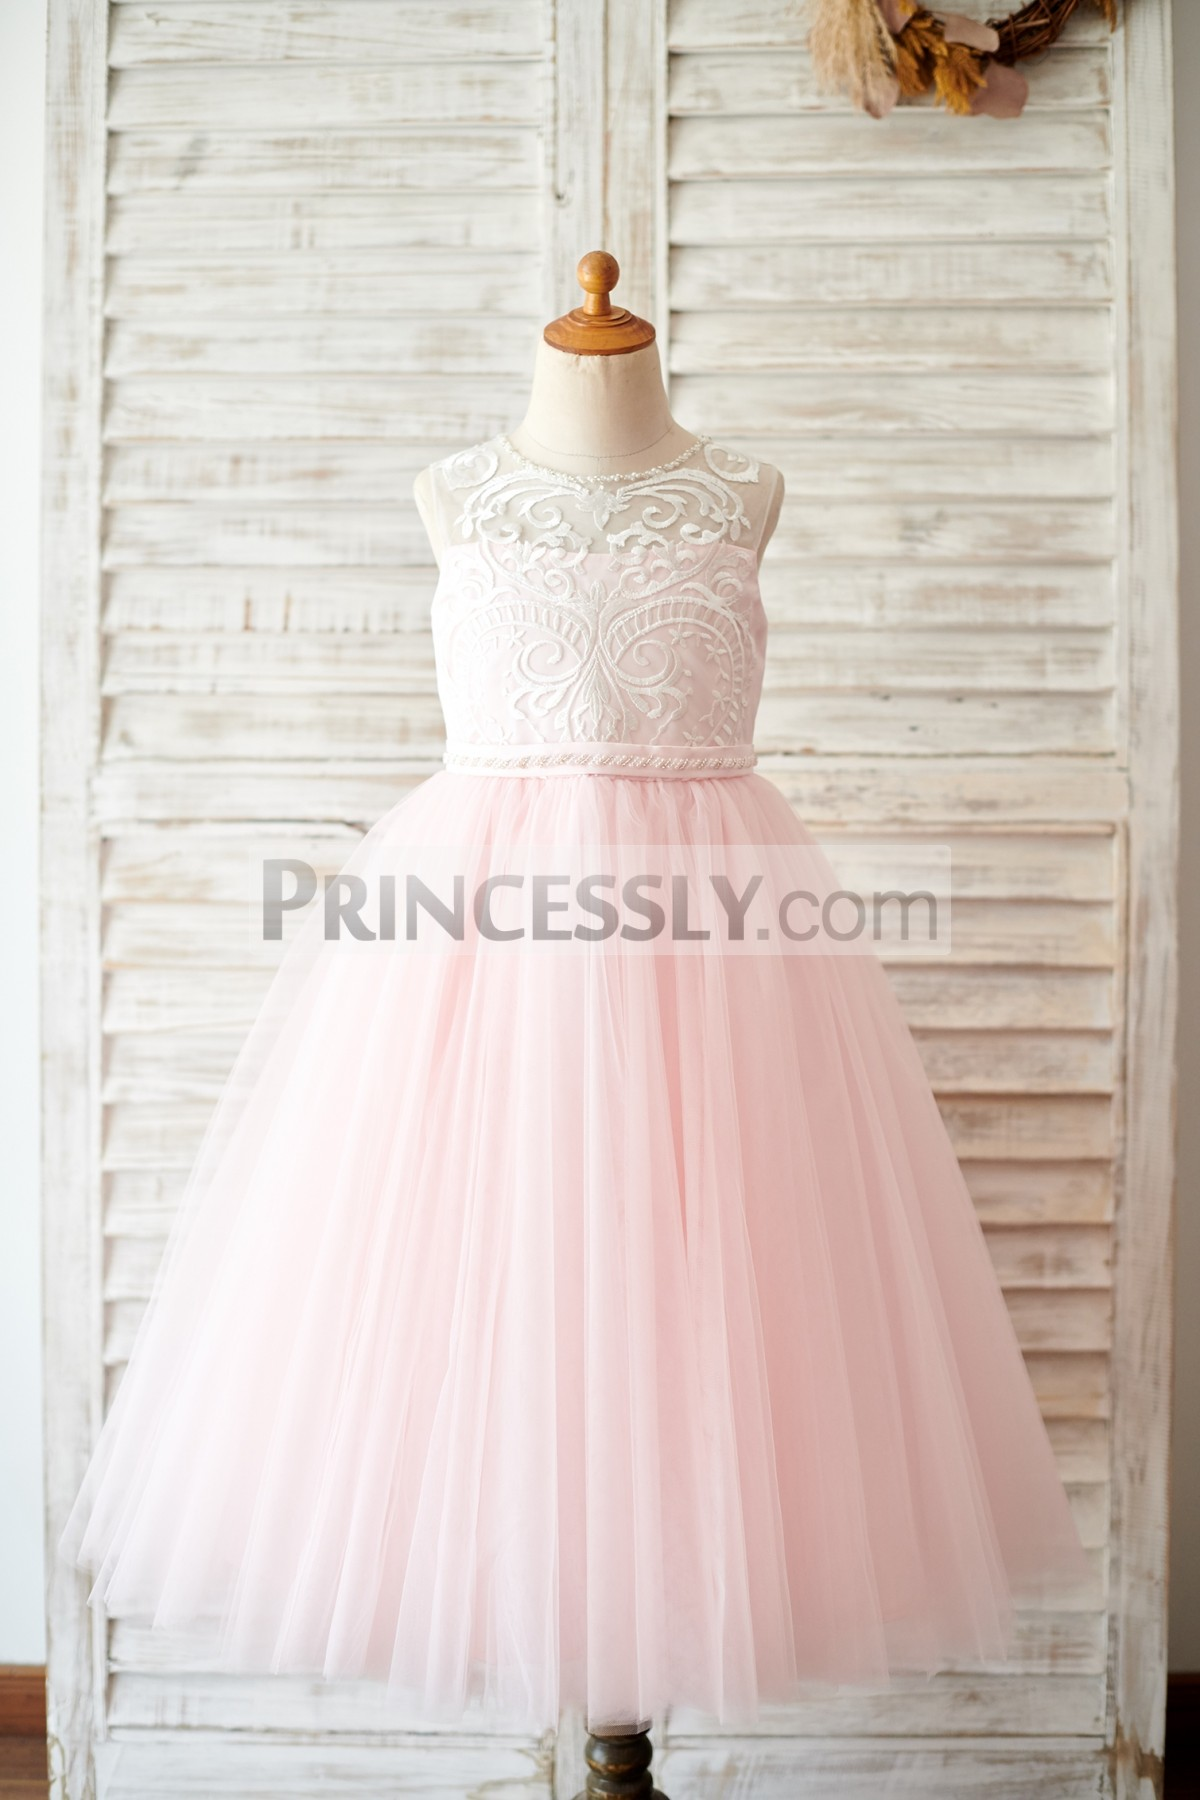 Lace Overlay Pink Tulle Tea Length Ball Gown Flower Girl Dress